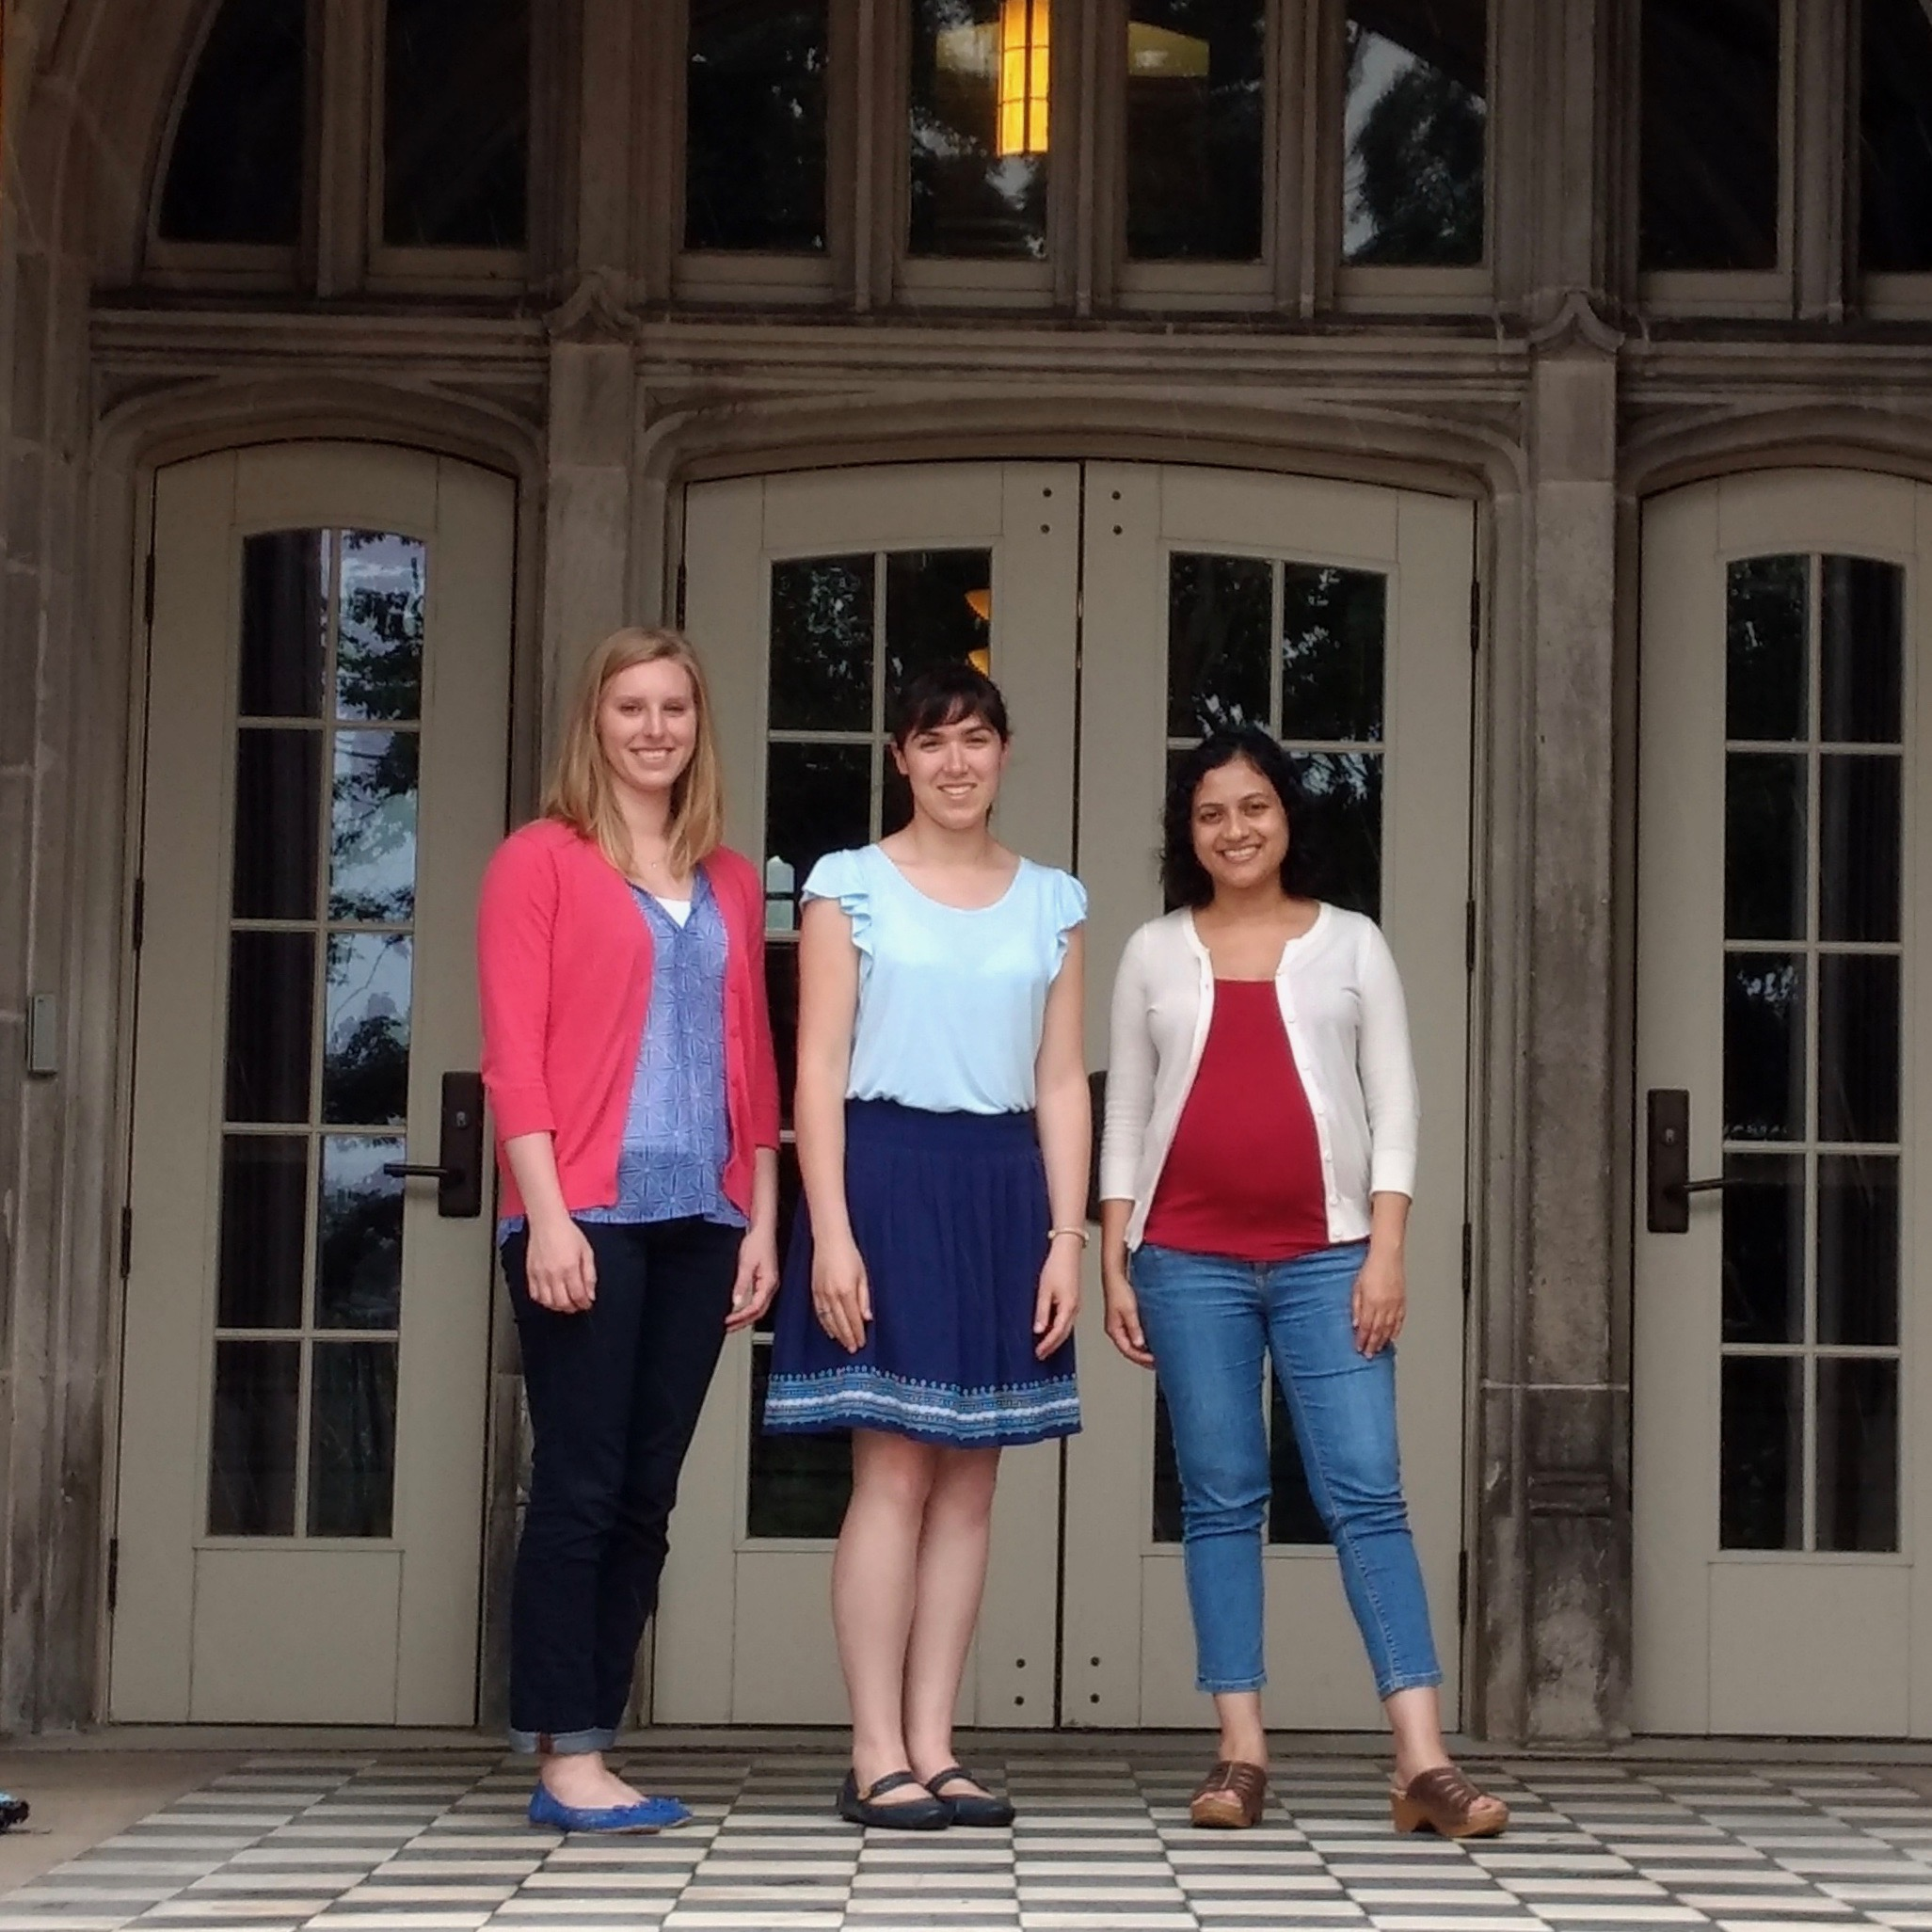 Marie visited Sharani Roy's group at The University of Tennessee – Knoxville. (L-R) Sarah Isbill, Marie, Prof. Roy.